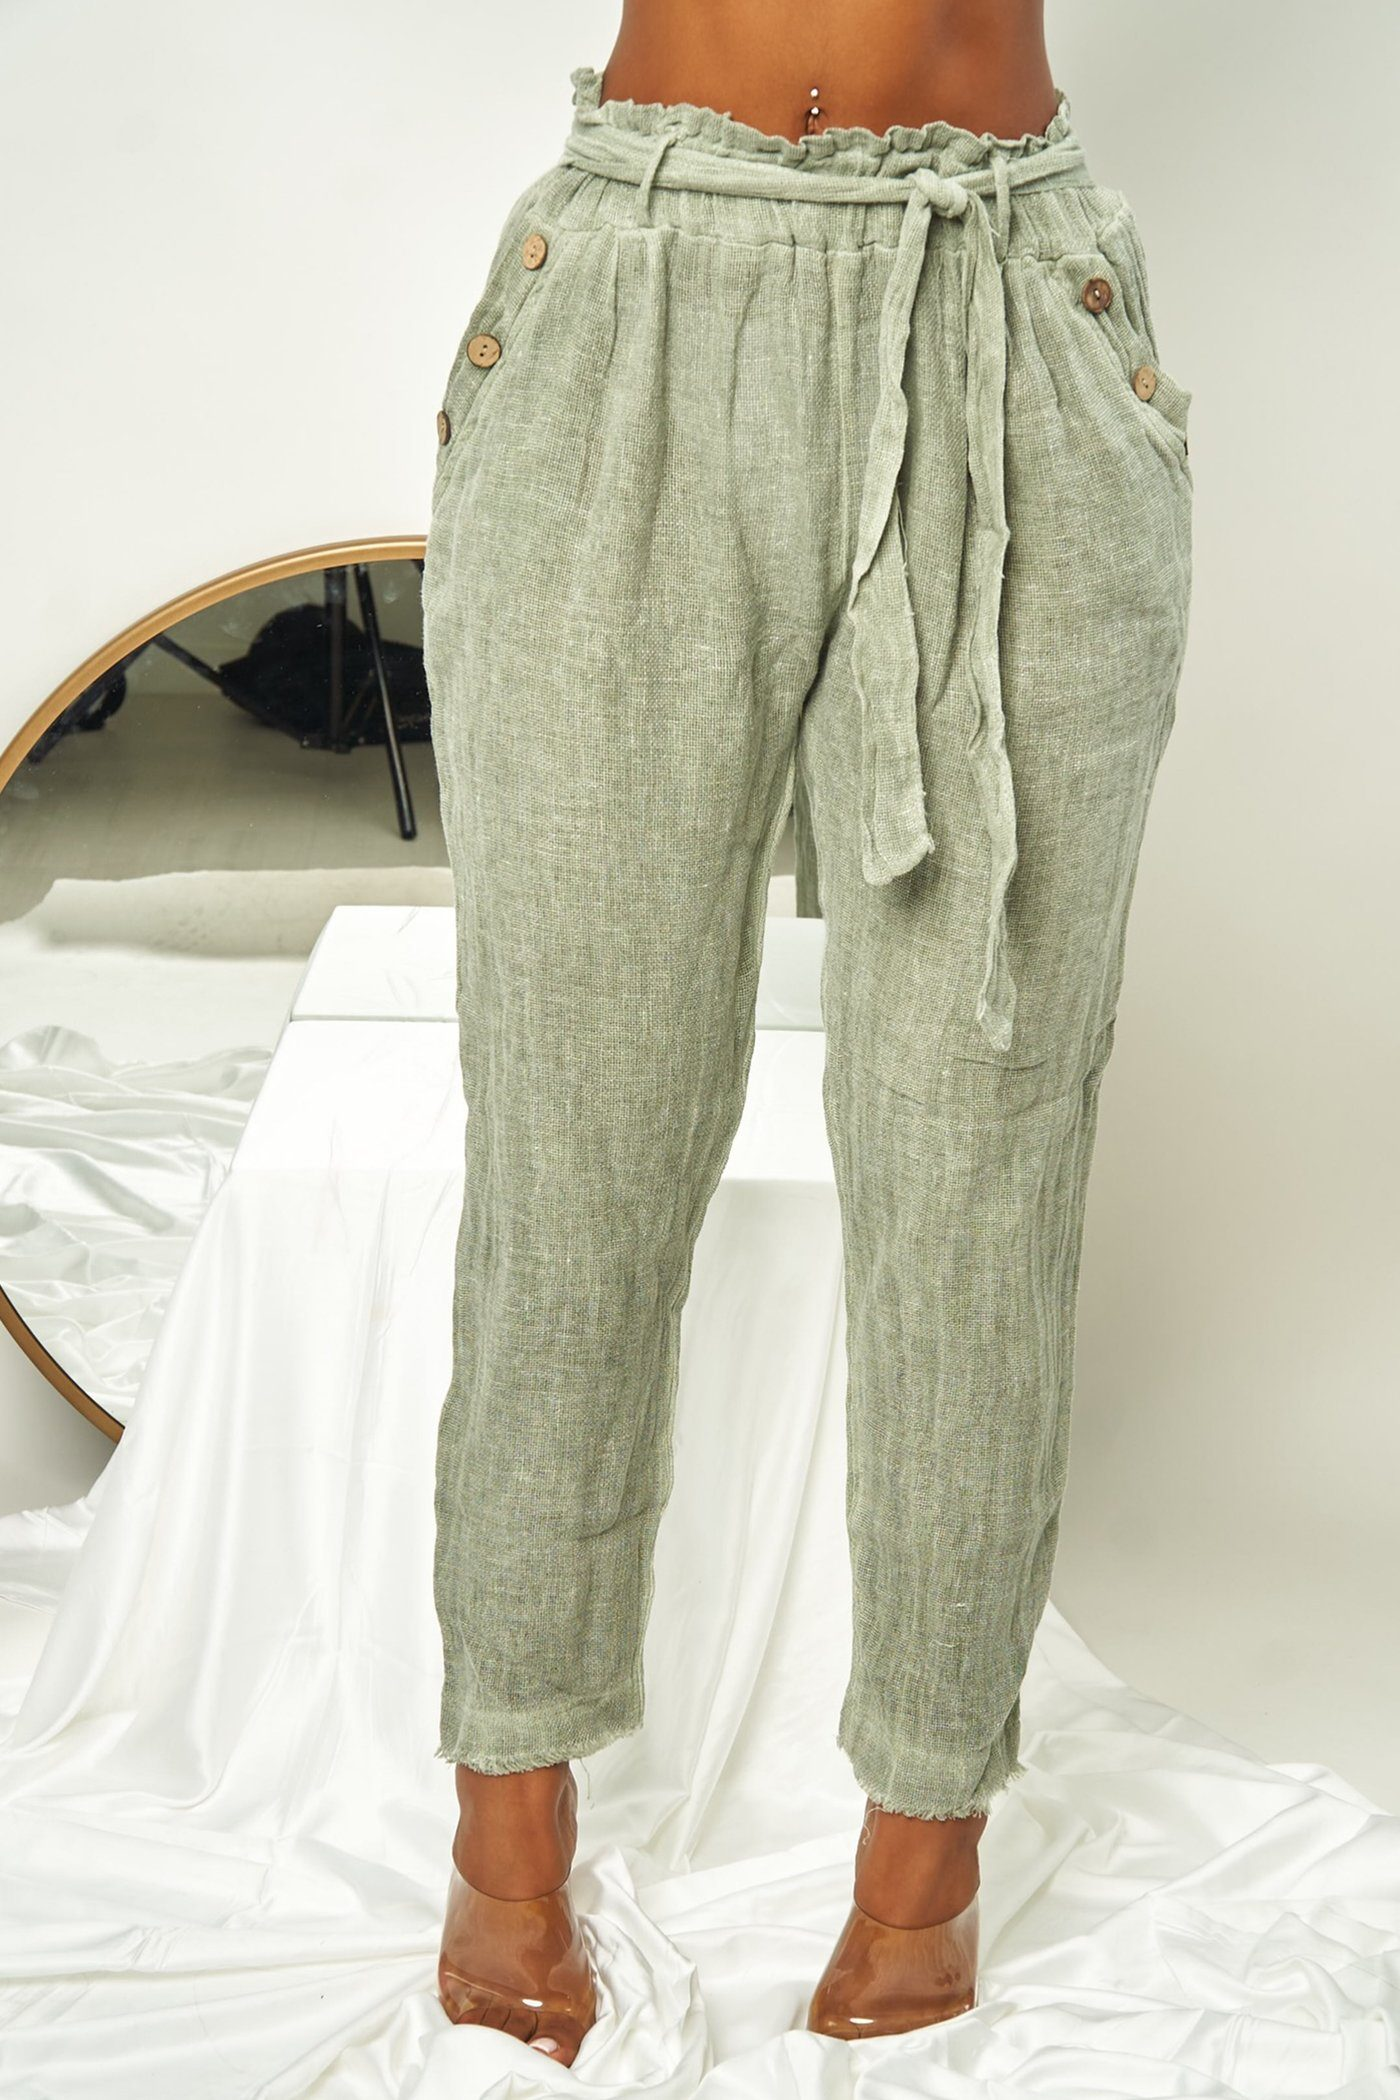 GISELE PANTS - SAGE Lotus Couture Miami